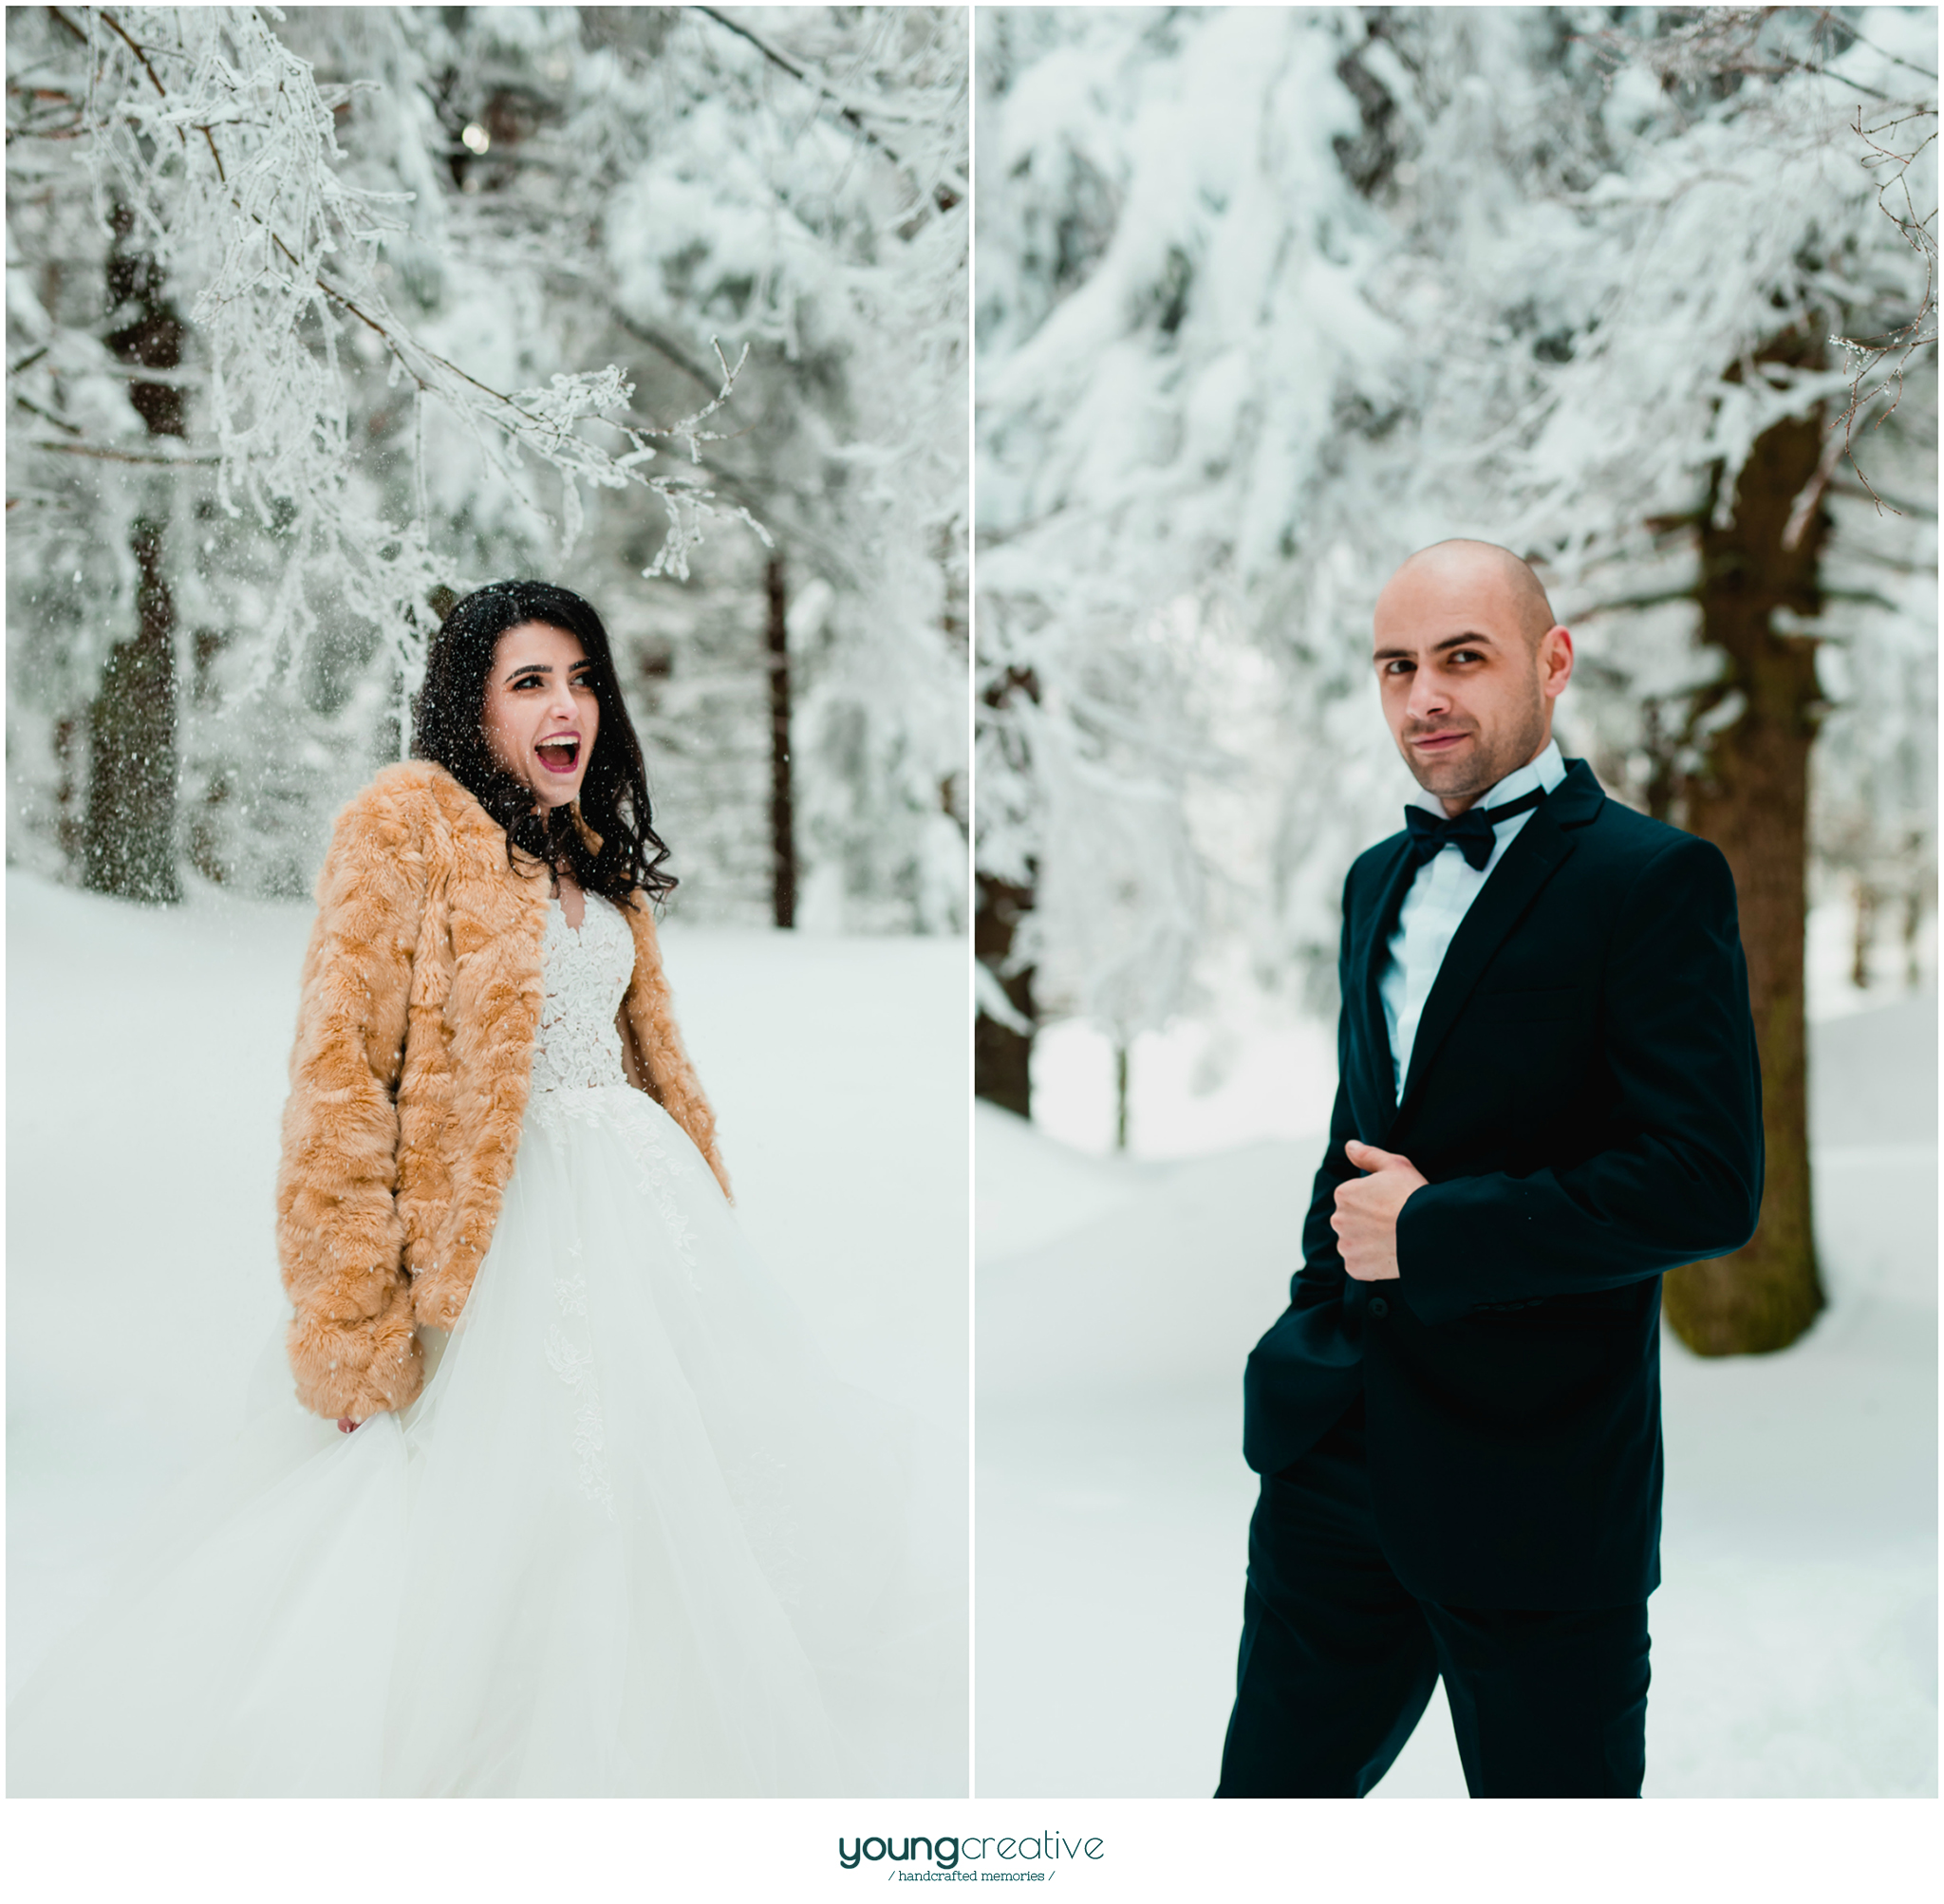 Trash the dress / Beta & Fanu / Filipciuc Dan & Cristina Bejan / fotograf Iasi / youngcreative.info